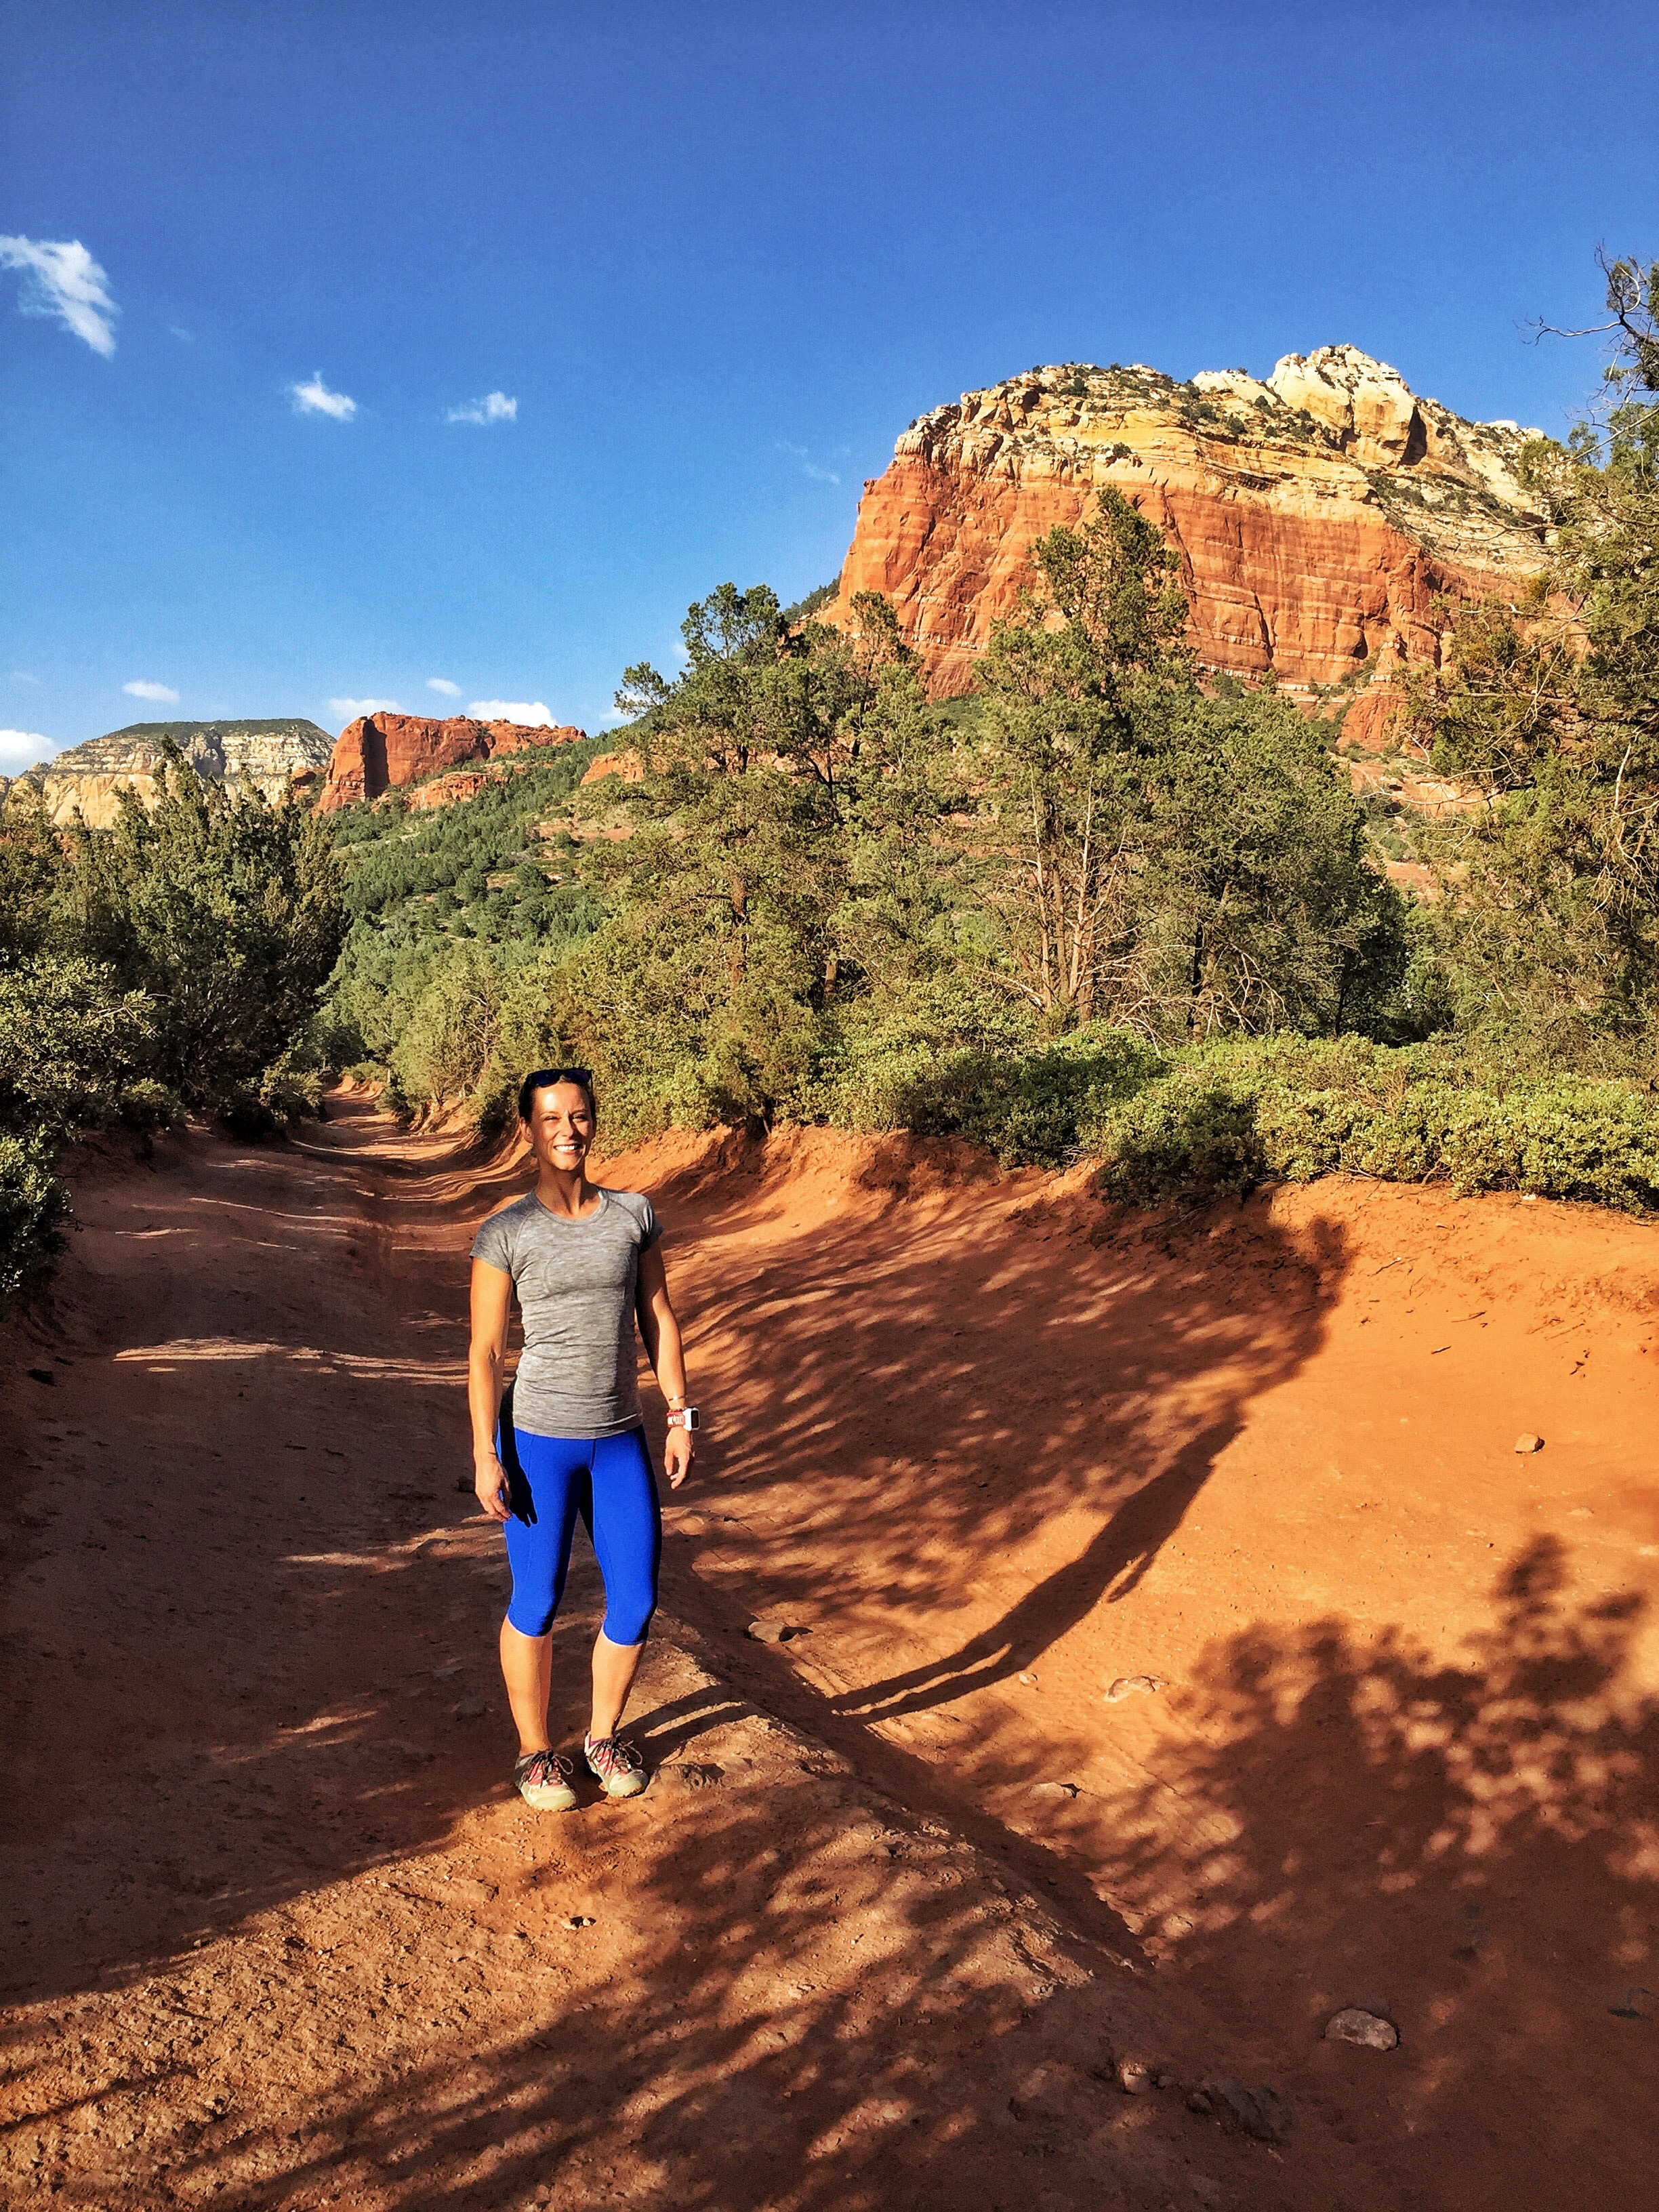 The blue pants allow me to stand out. Red Rock Canyons, Sedona, Arizona.